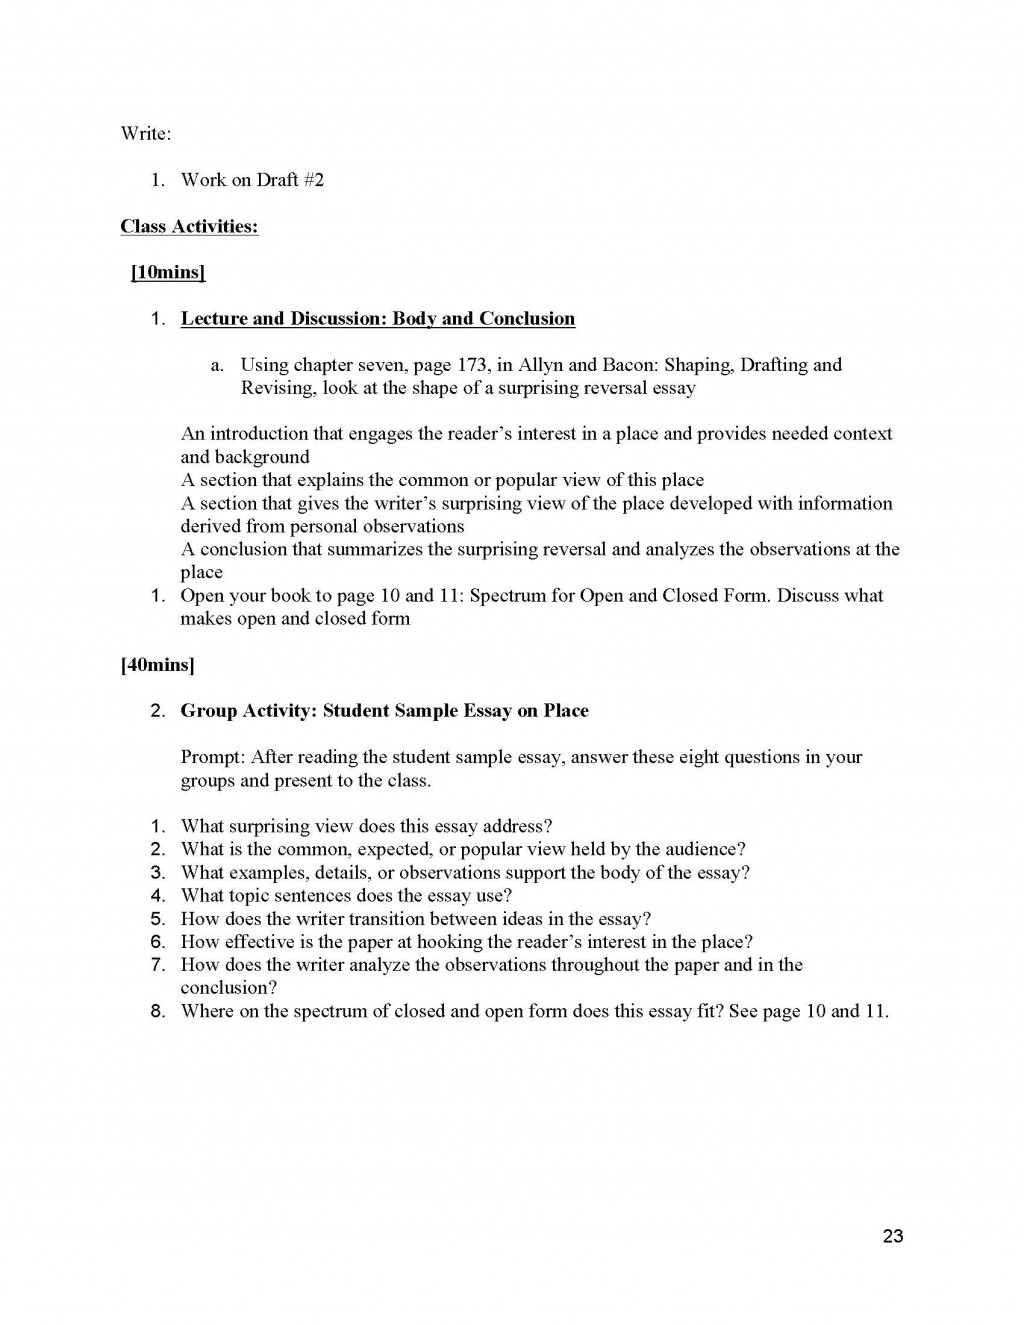 024 Informative Essay Topics Unit 2 Plans Instructor Copy Page 23 Remarkable For High School 4th Grade Expository Large